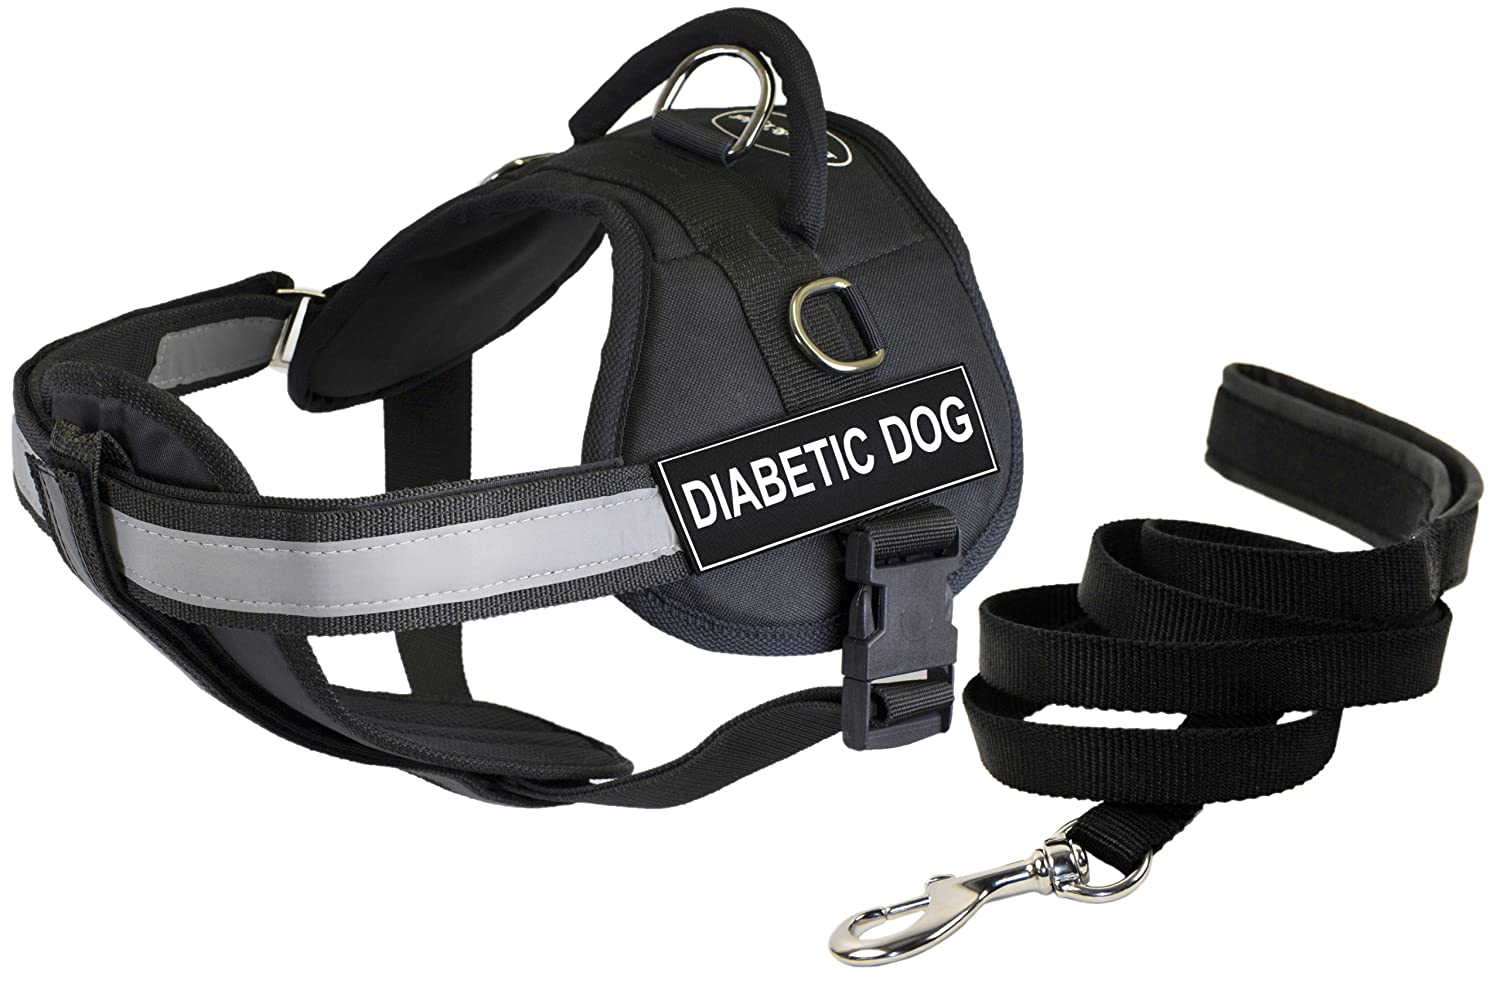 Dean & Tyler 21 by 26-Inch Diabetic Dog Harness with Padded Puppy Leash, X-Small